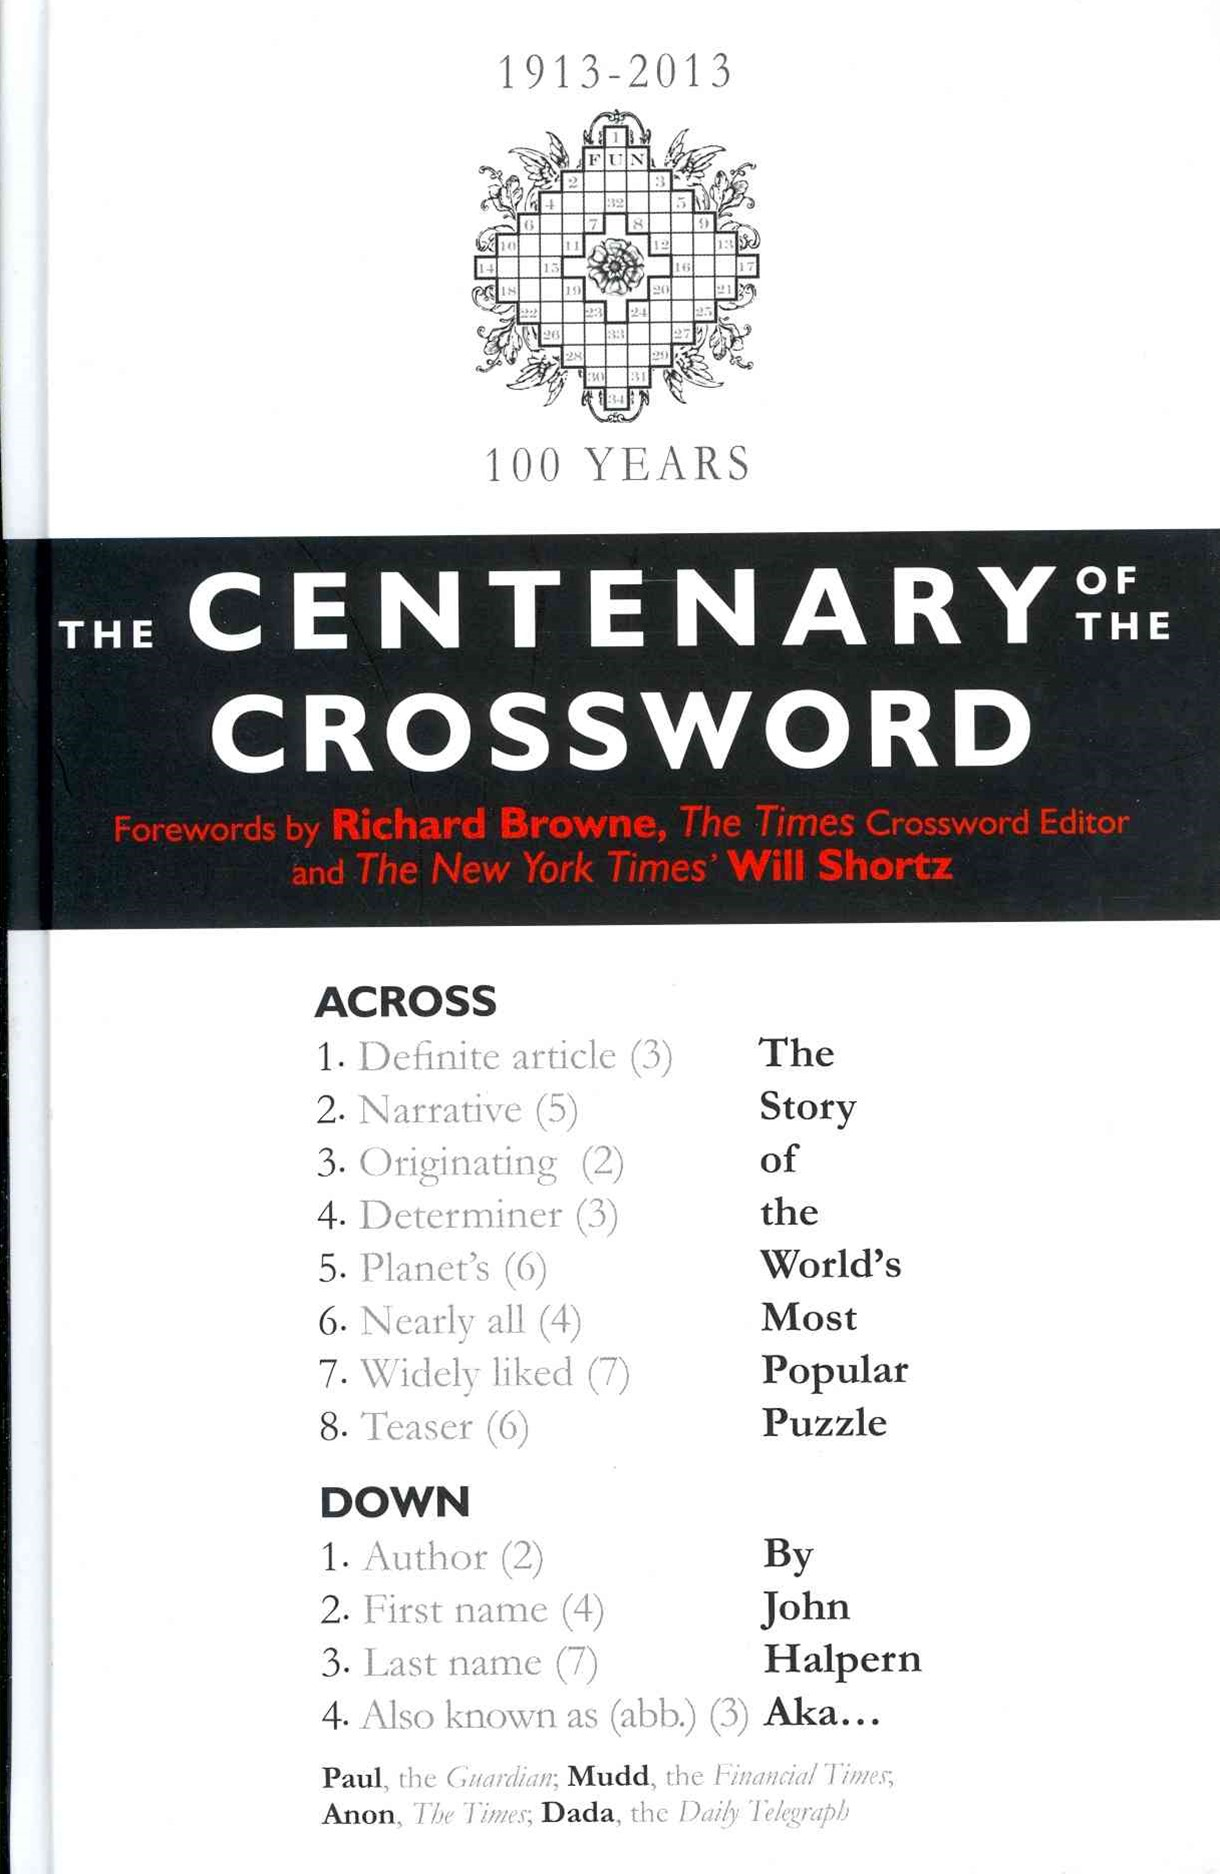 The Centenary of the Crossword